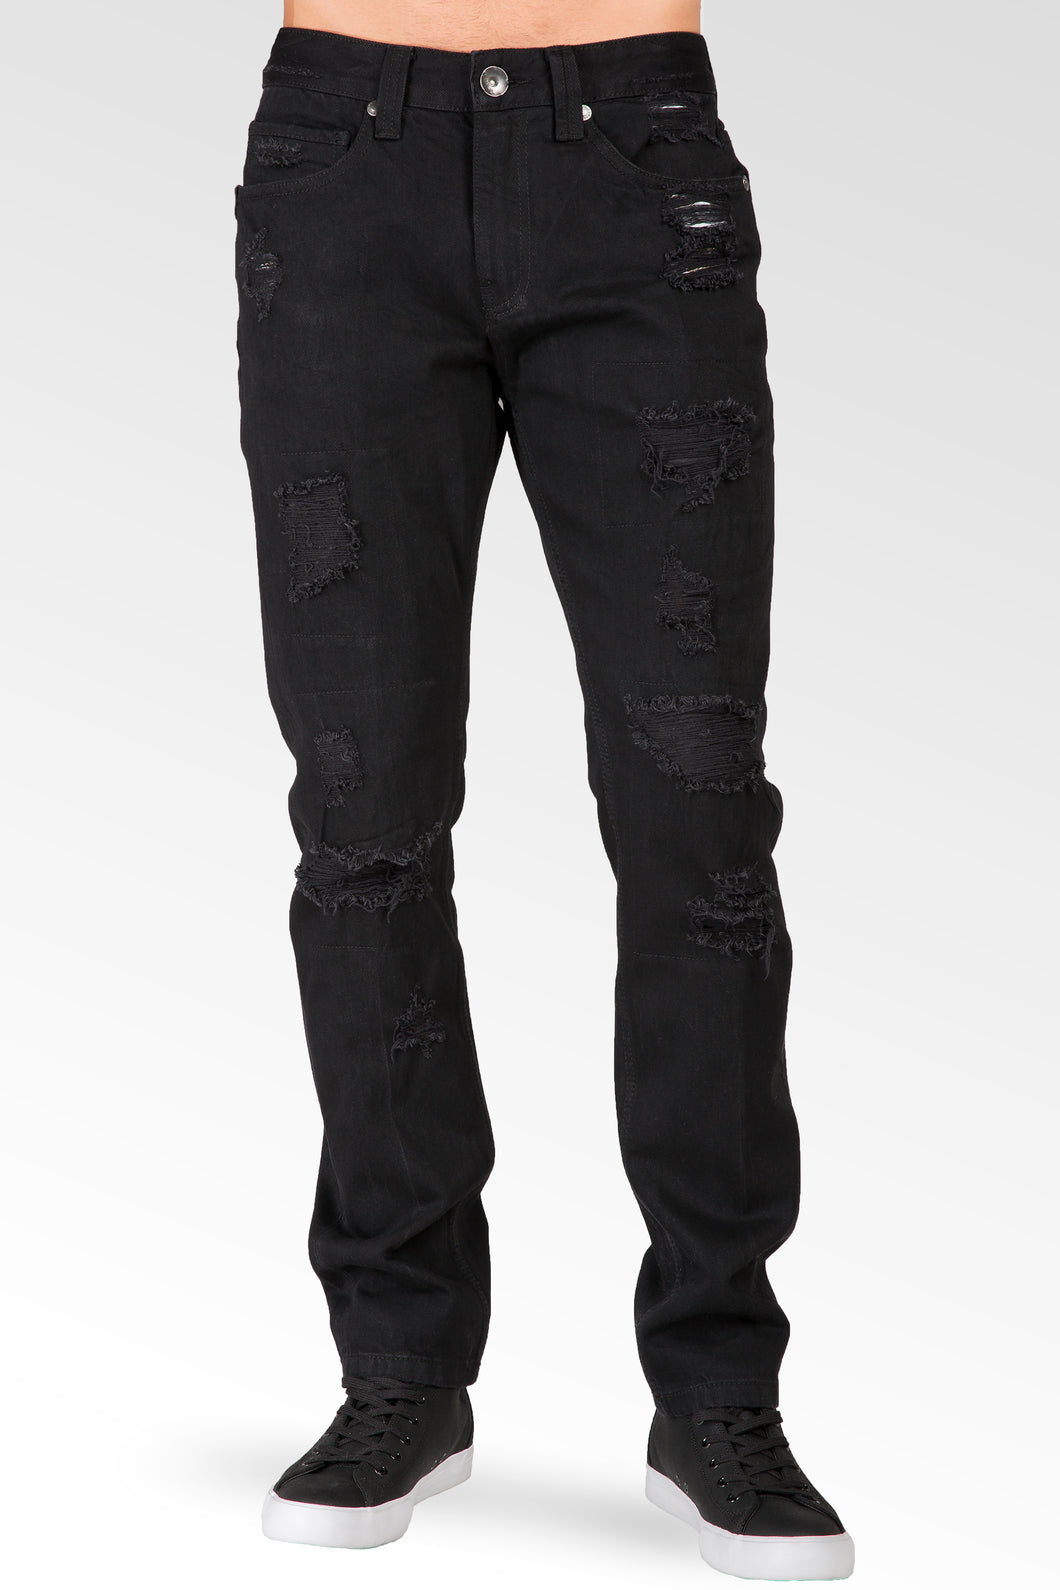 Slim Tapered Leg Overdyed Black Premium Denim Jean Mended Broken Holes